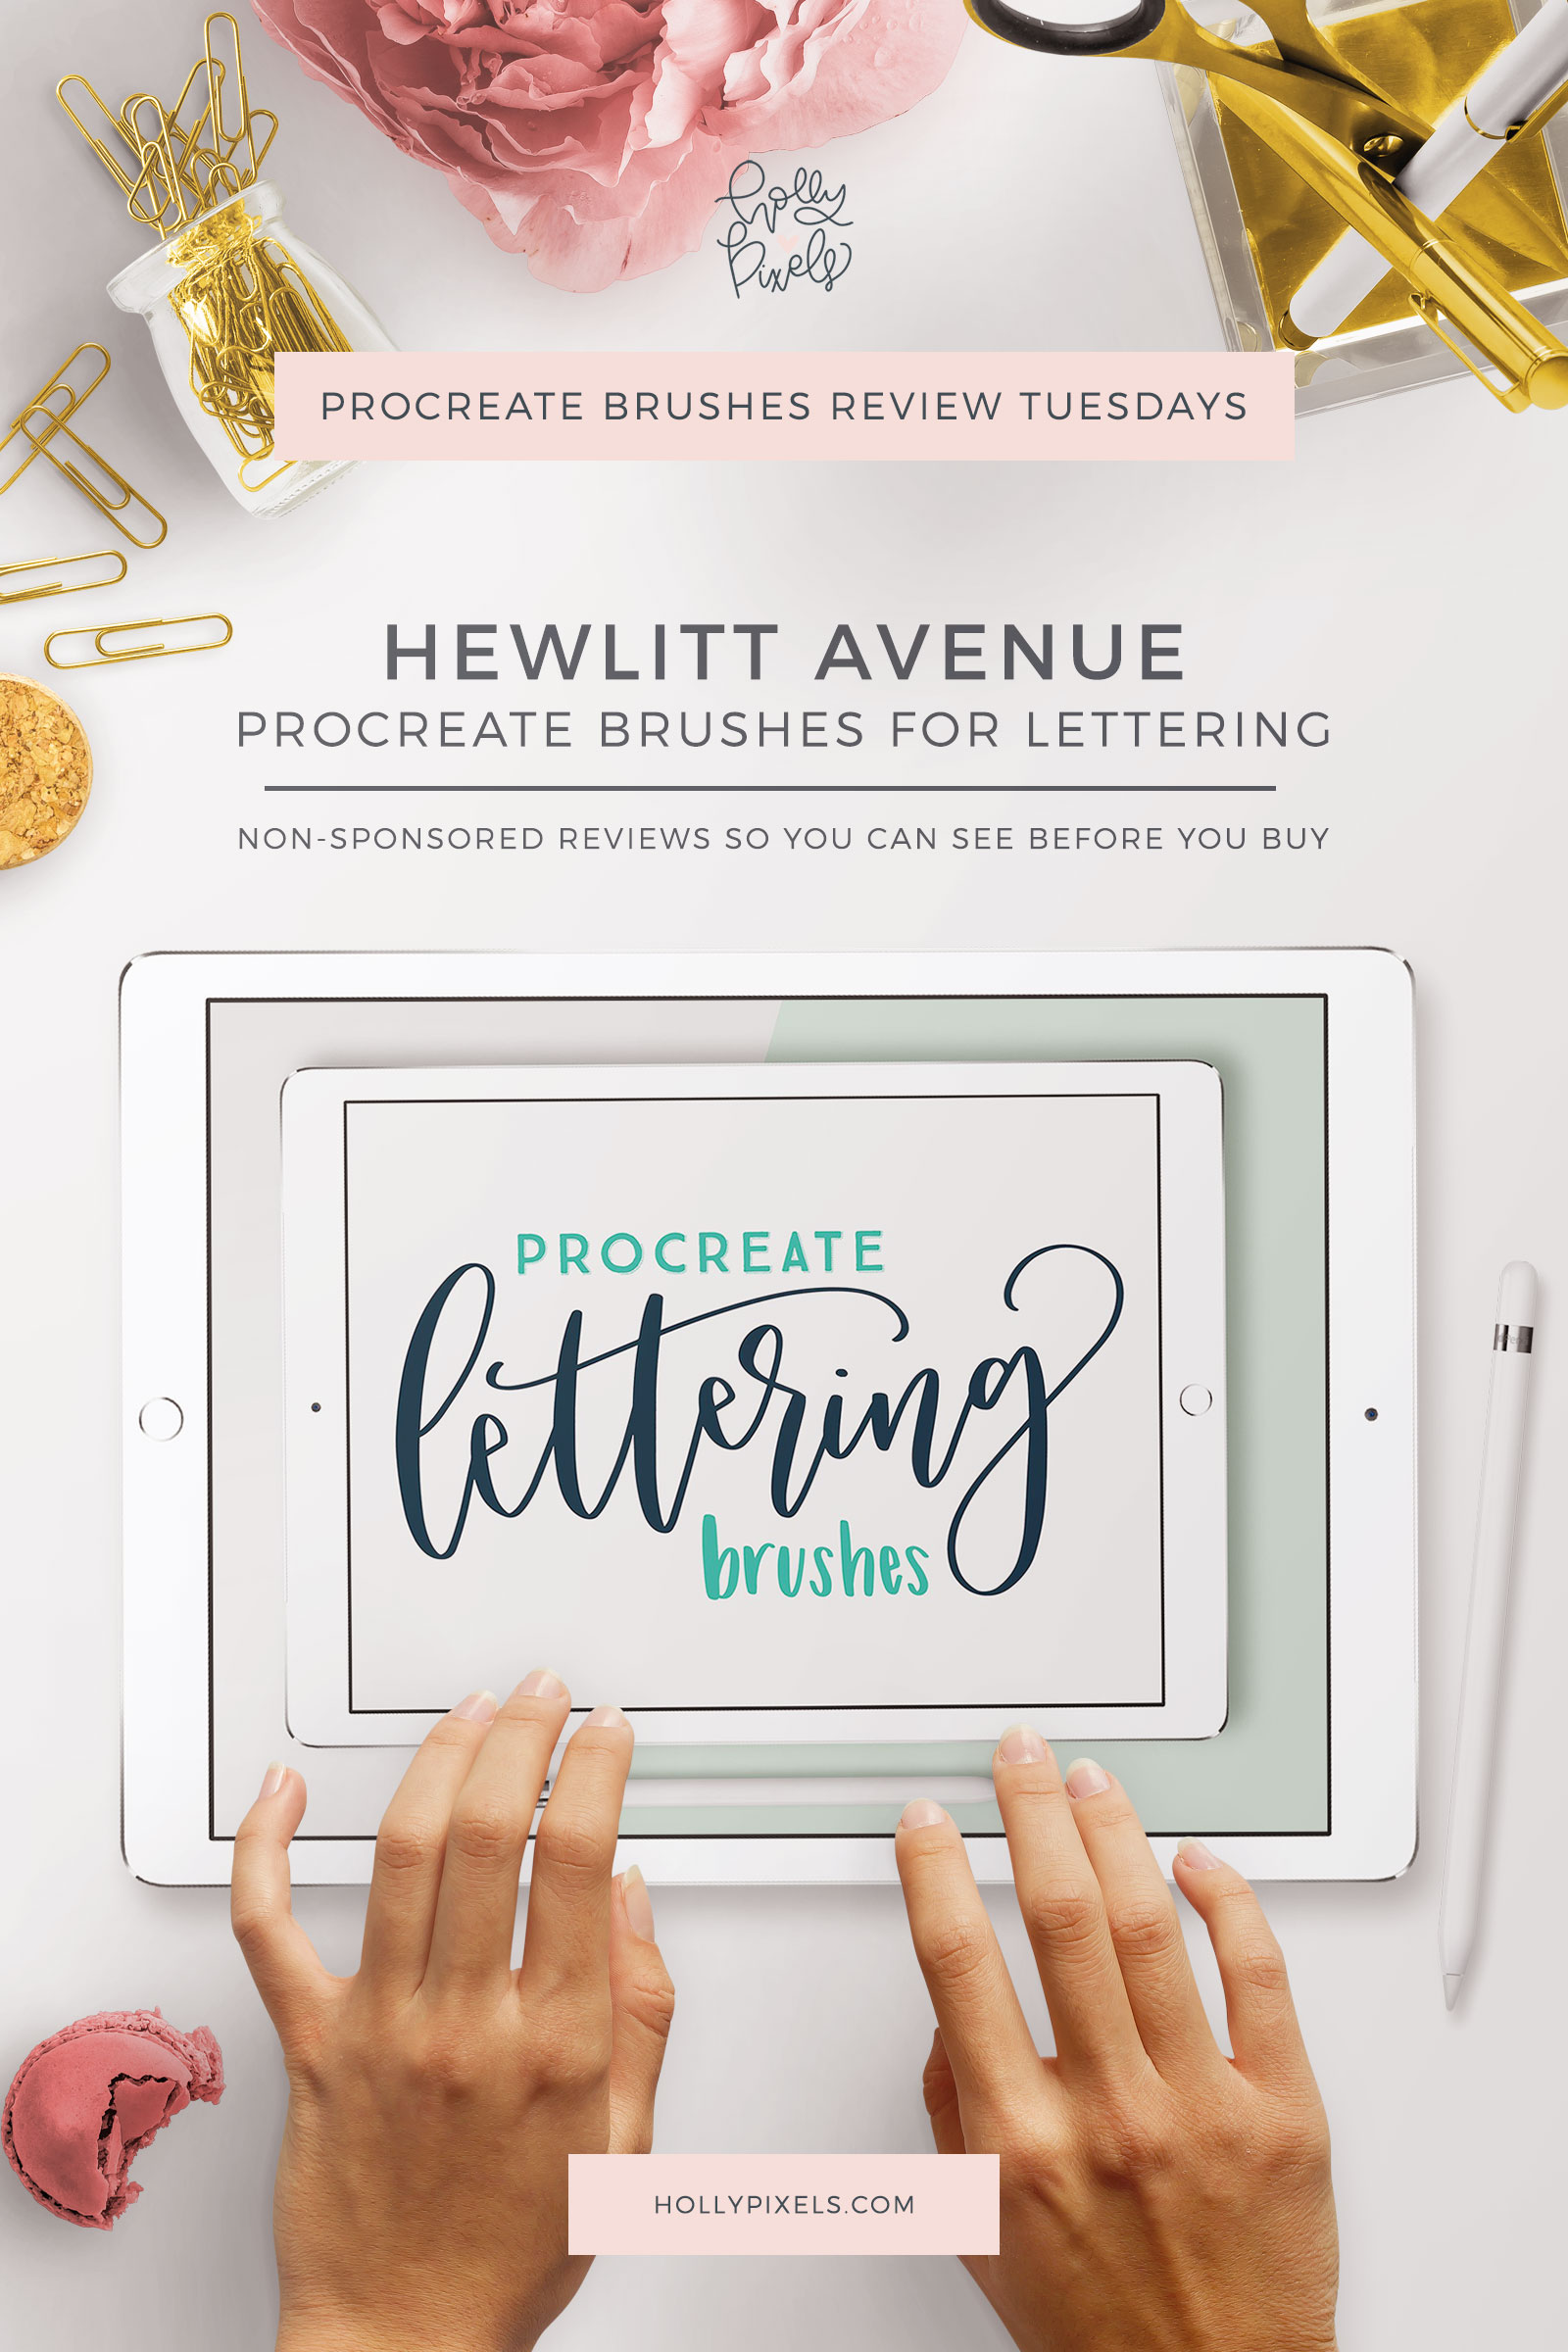 This week's Procreate brushes review features Lettering Brushes by Hewlitt Avenue that can be purchased at Creative Market.